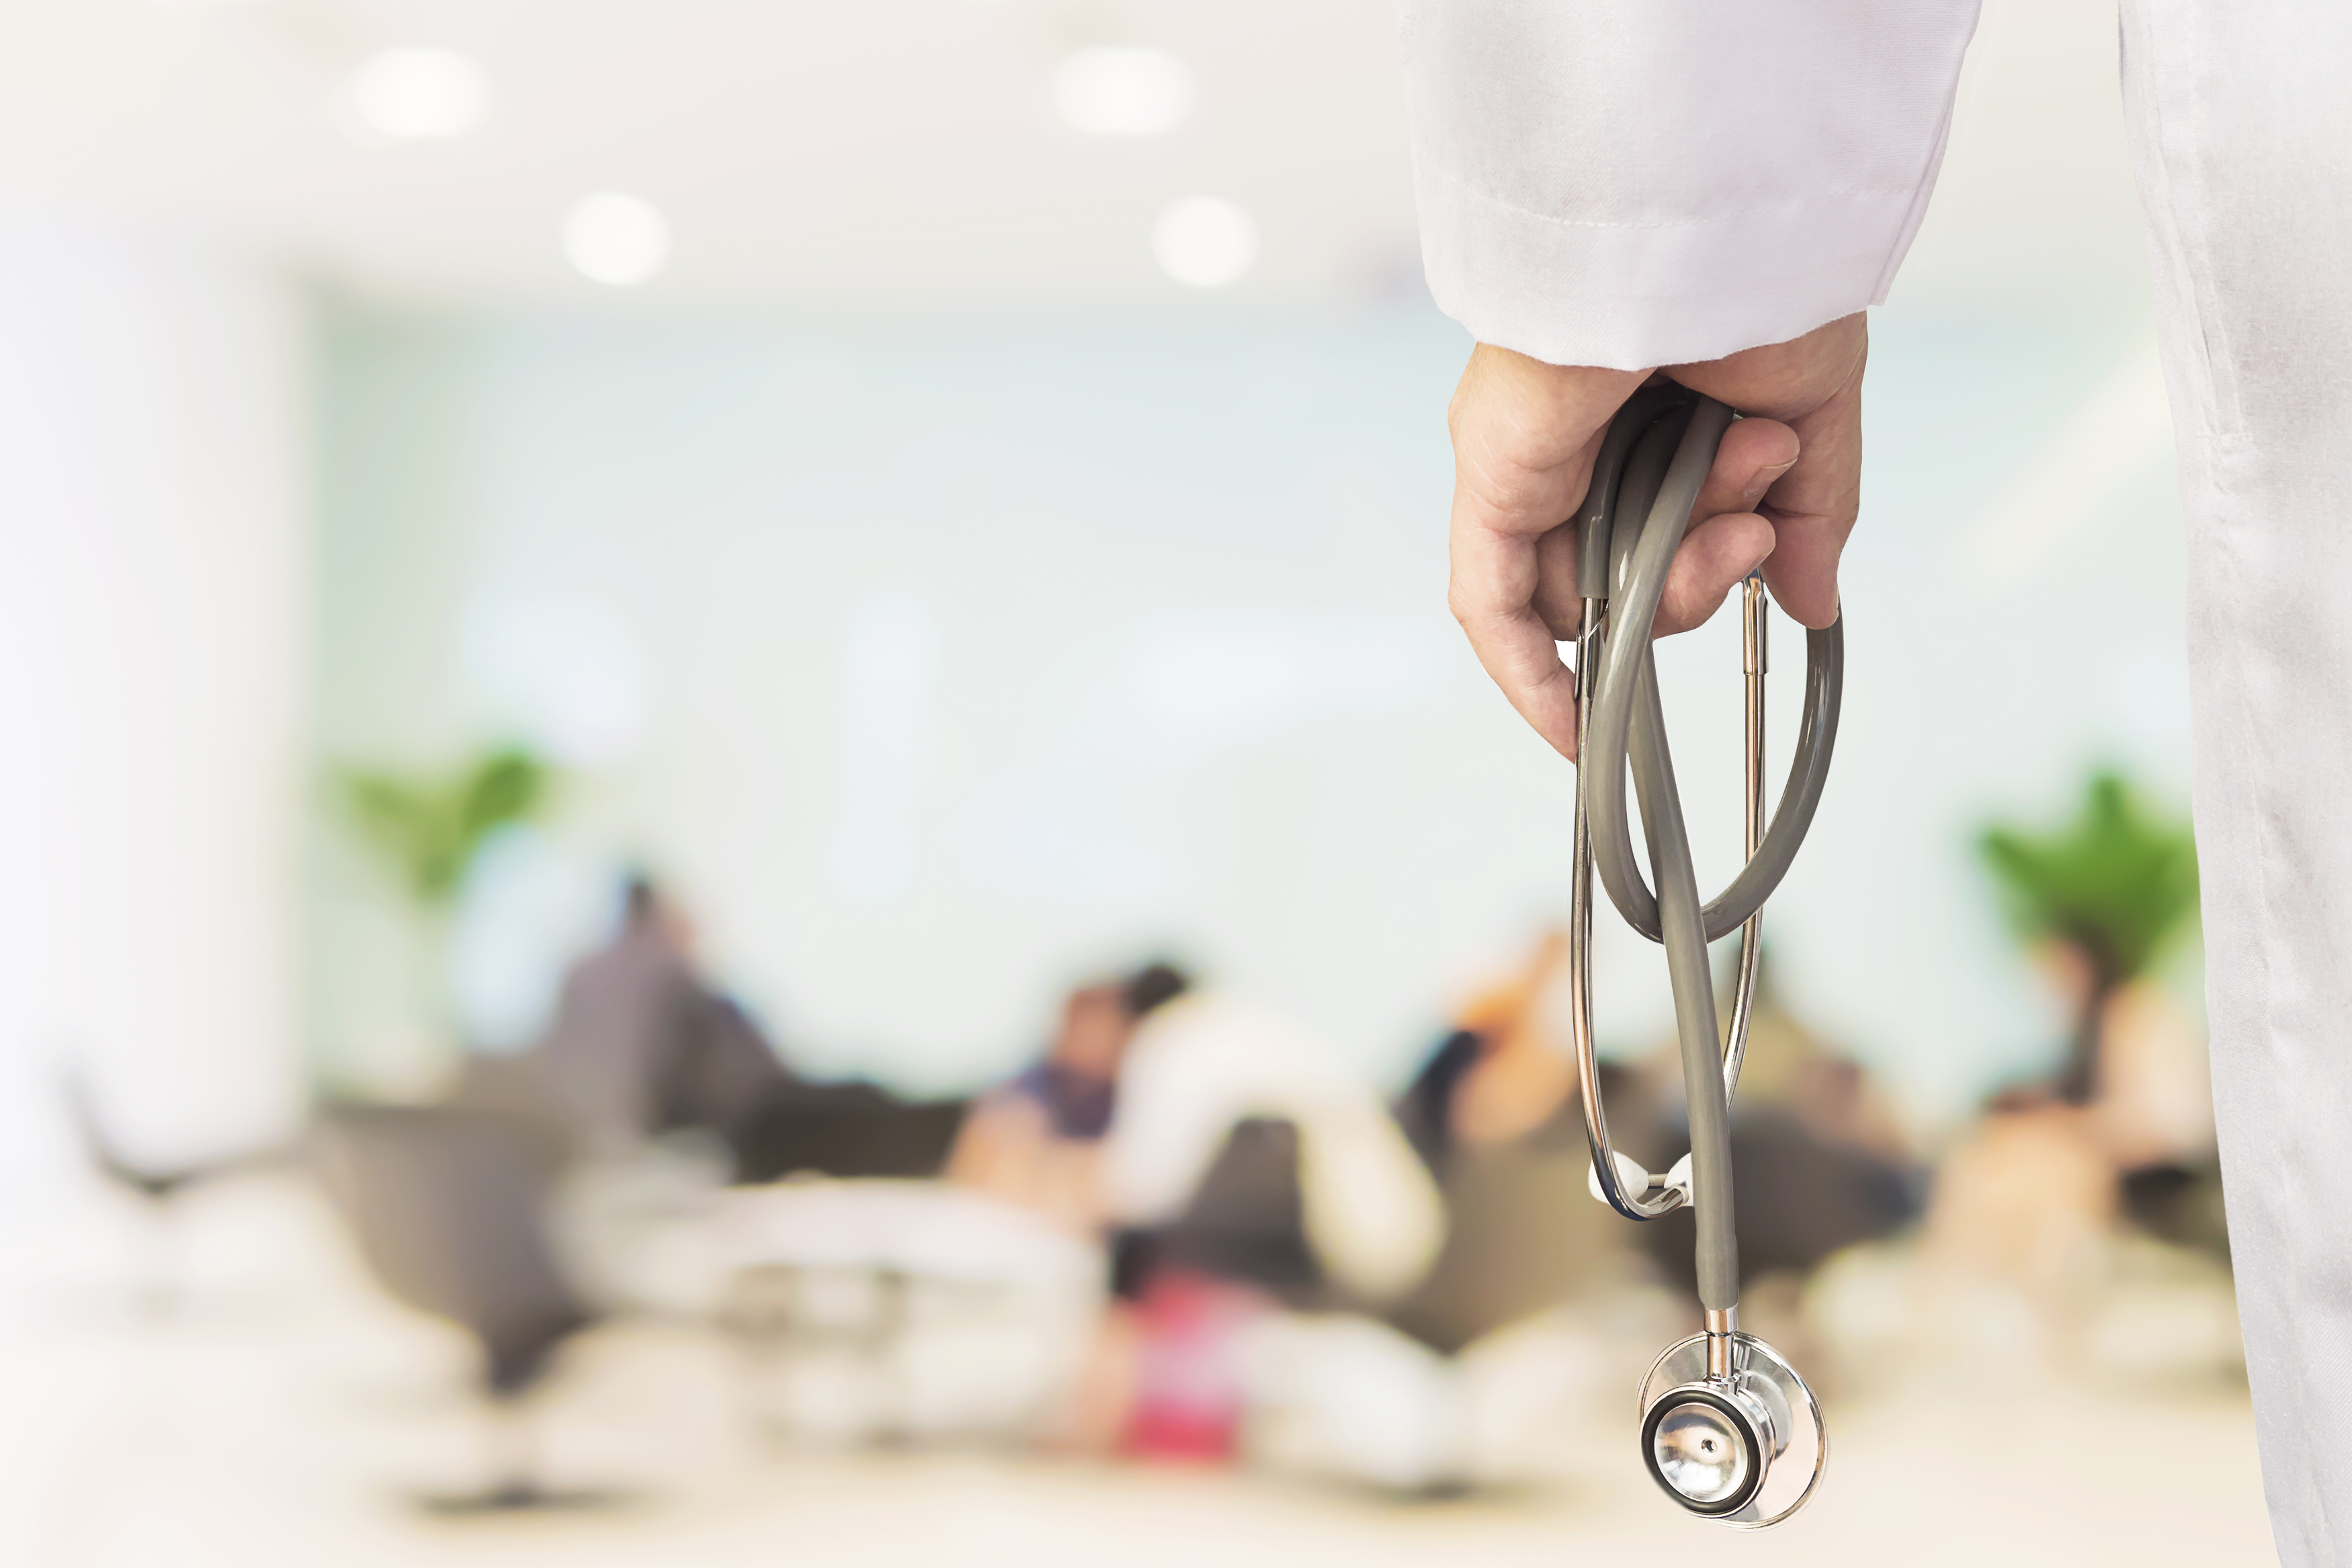 Doctor is going to examine his patient using his stethoscope over sitting people in modern hospital background